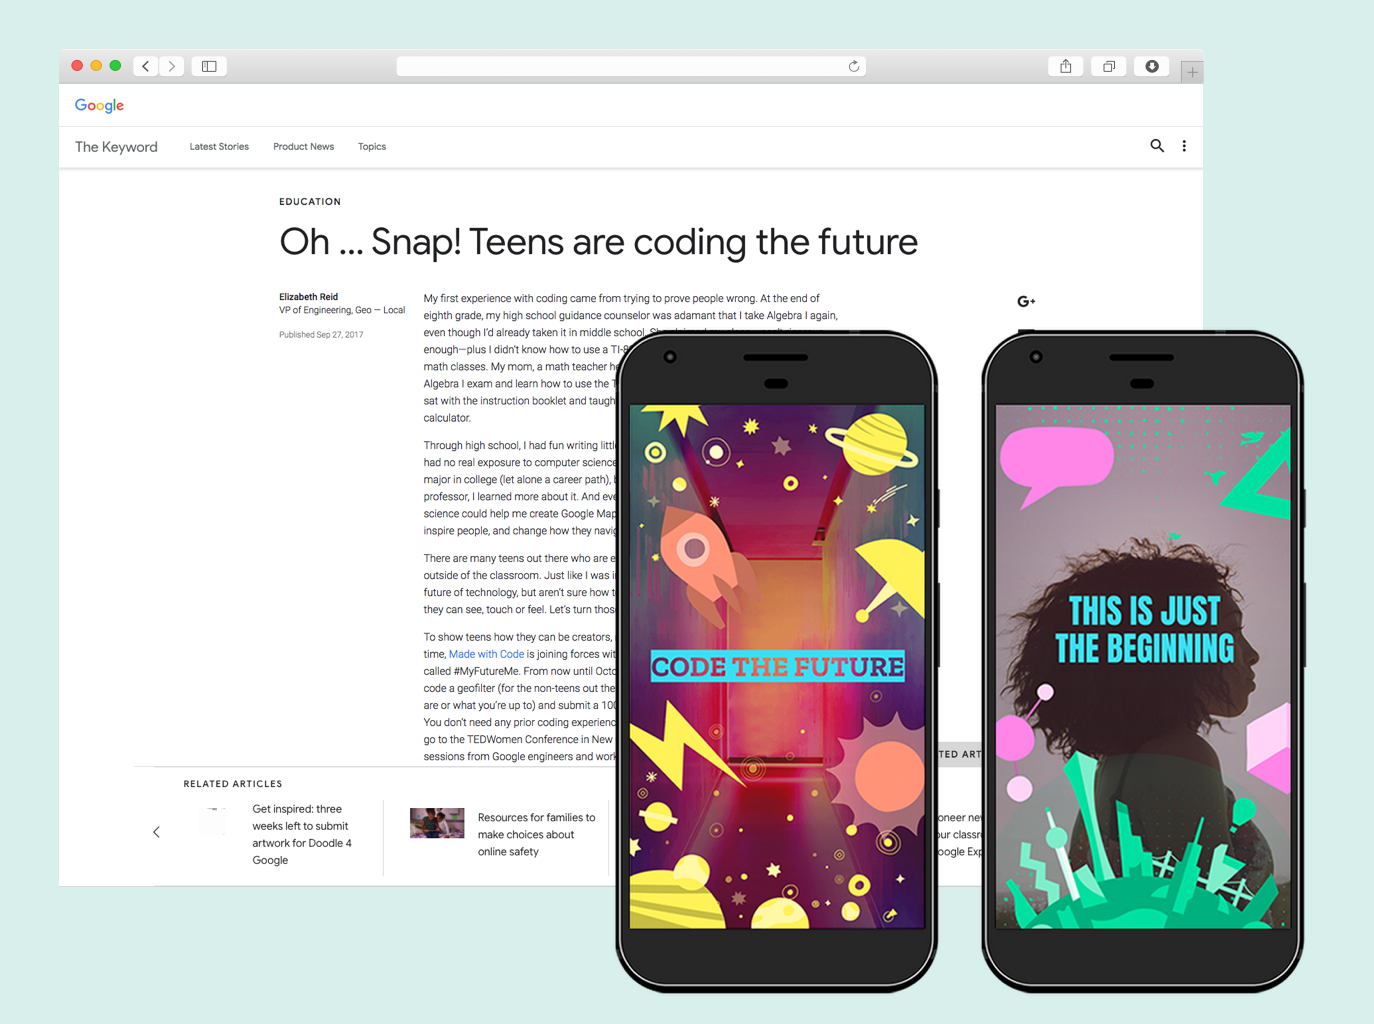 Designed snapchat geofilters promoted through blog and social channels.